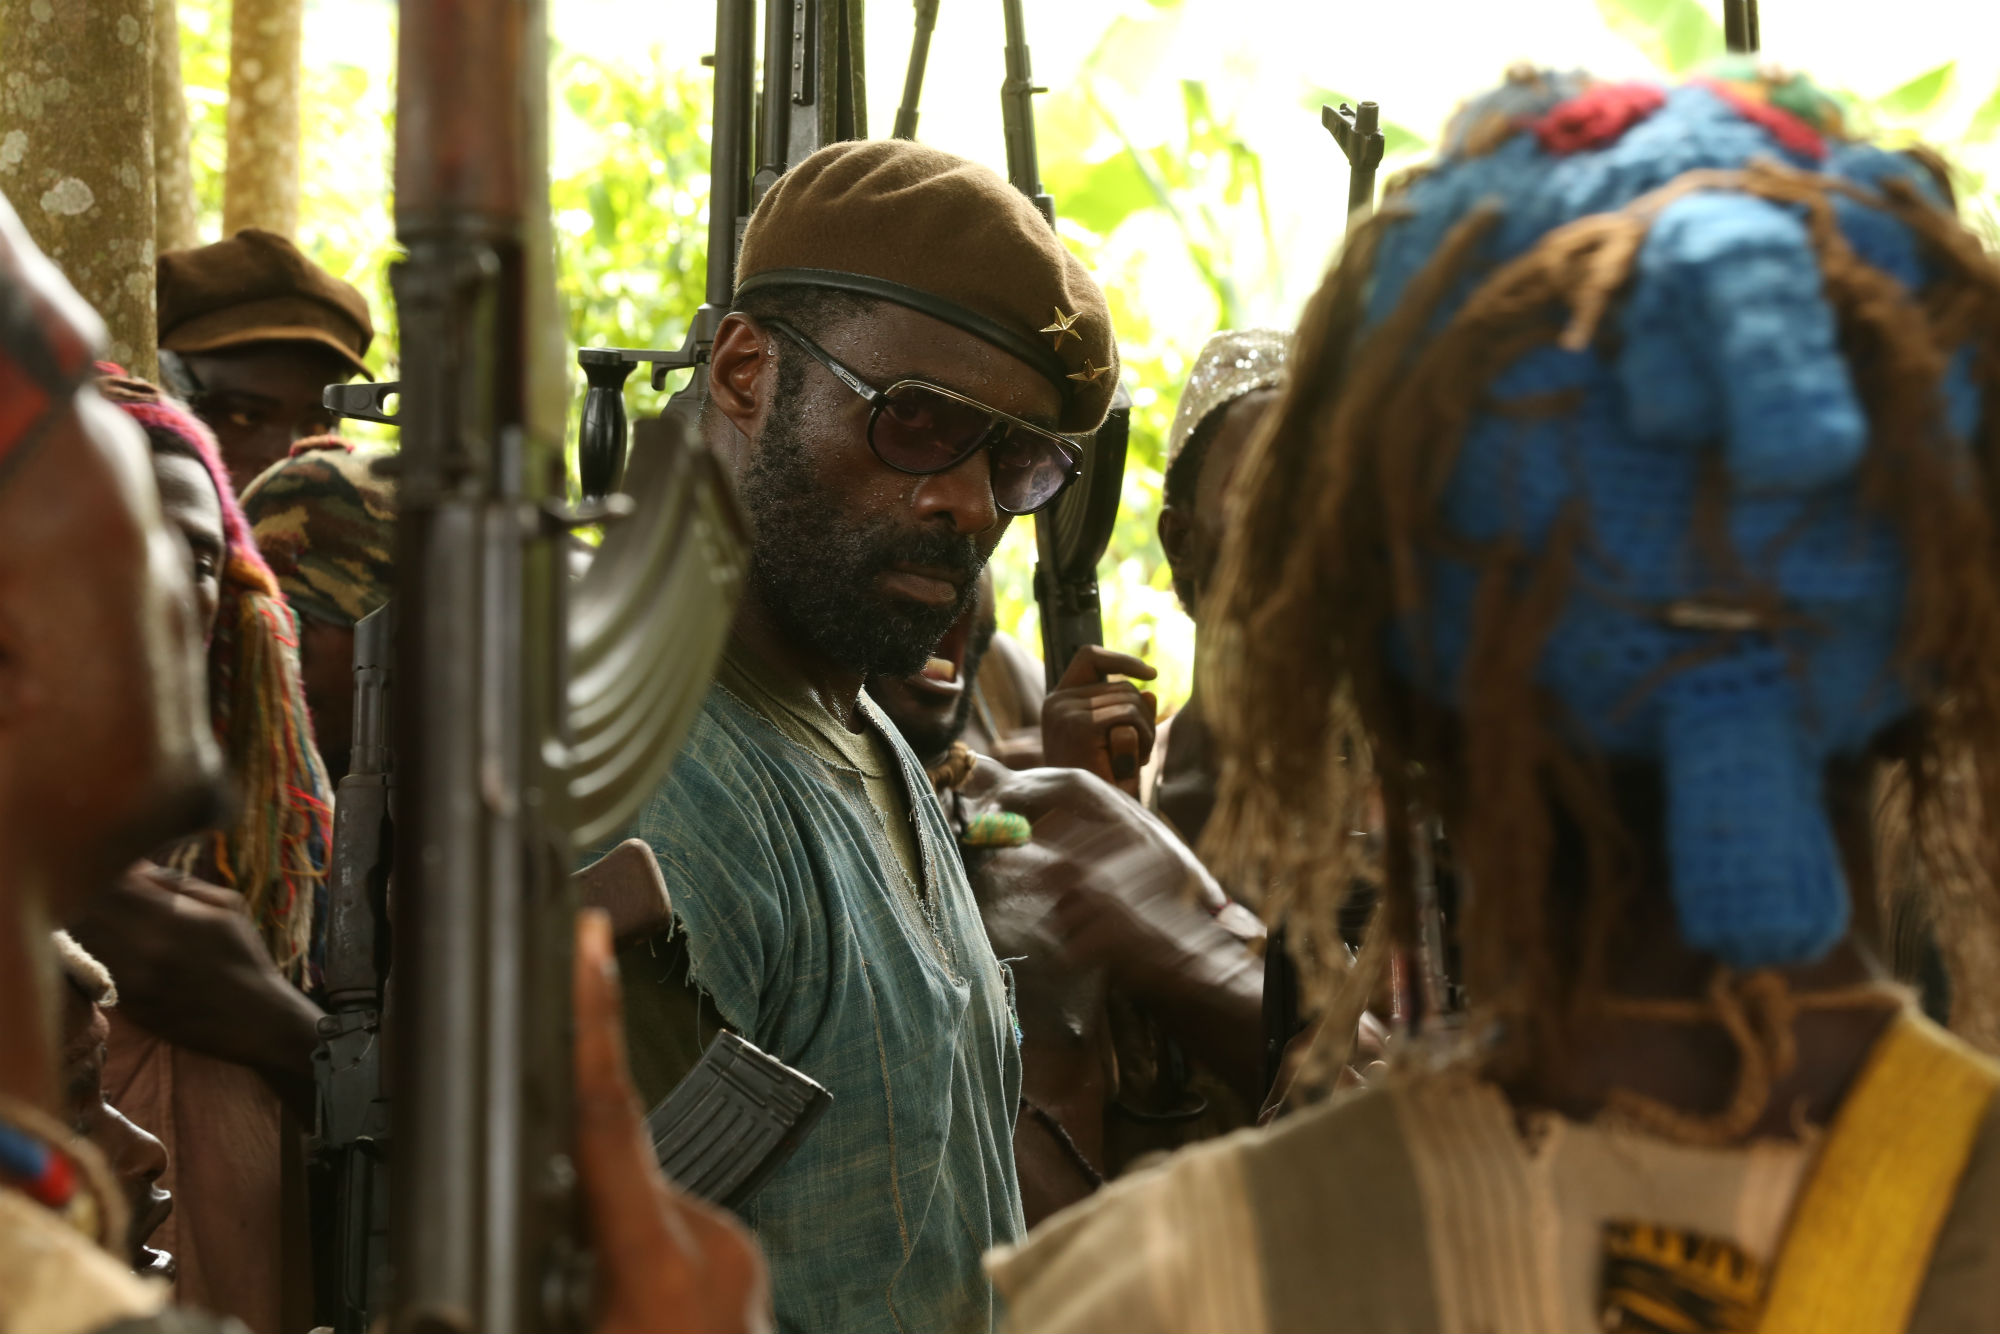 Beasts-of-No-Nation-1-Idris-Elba